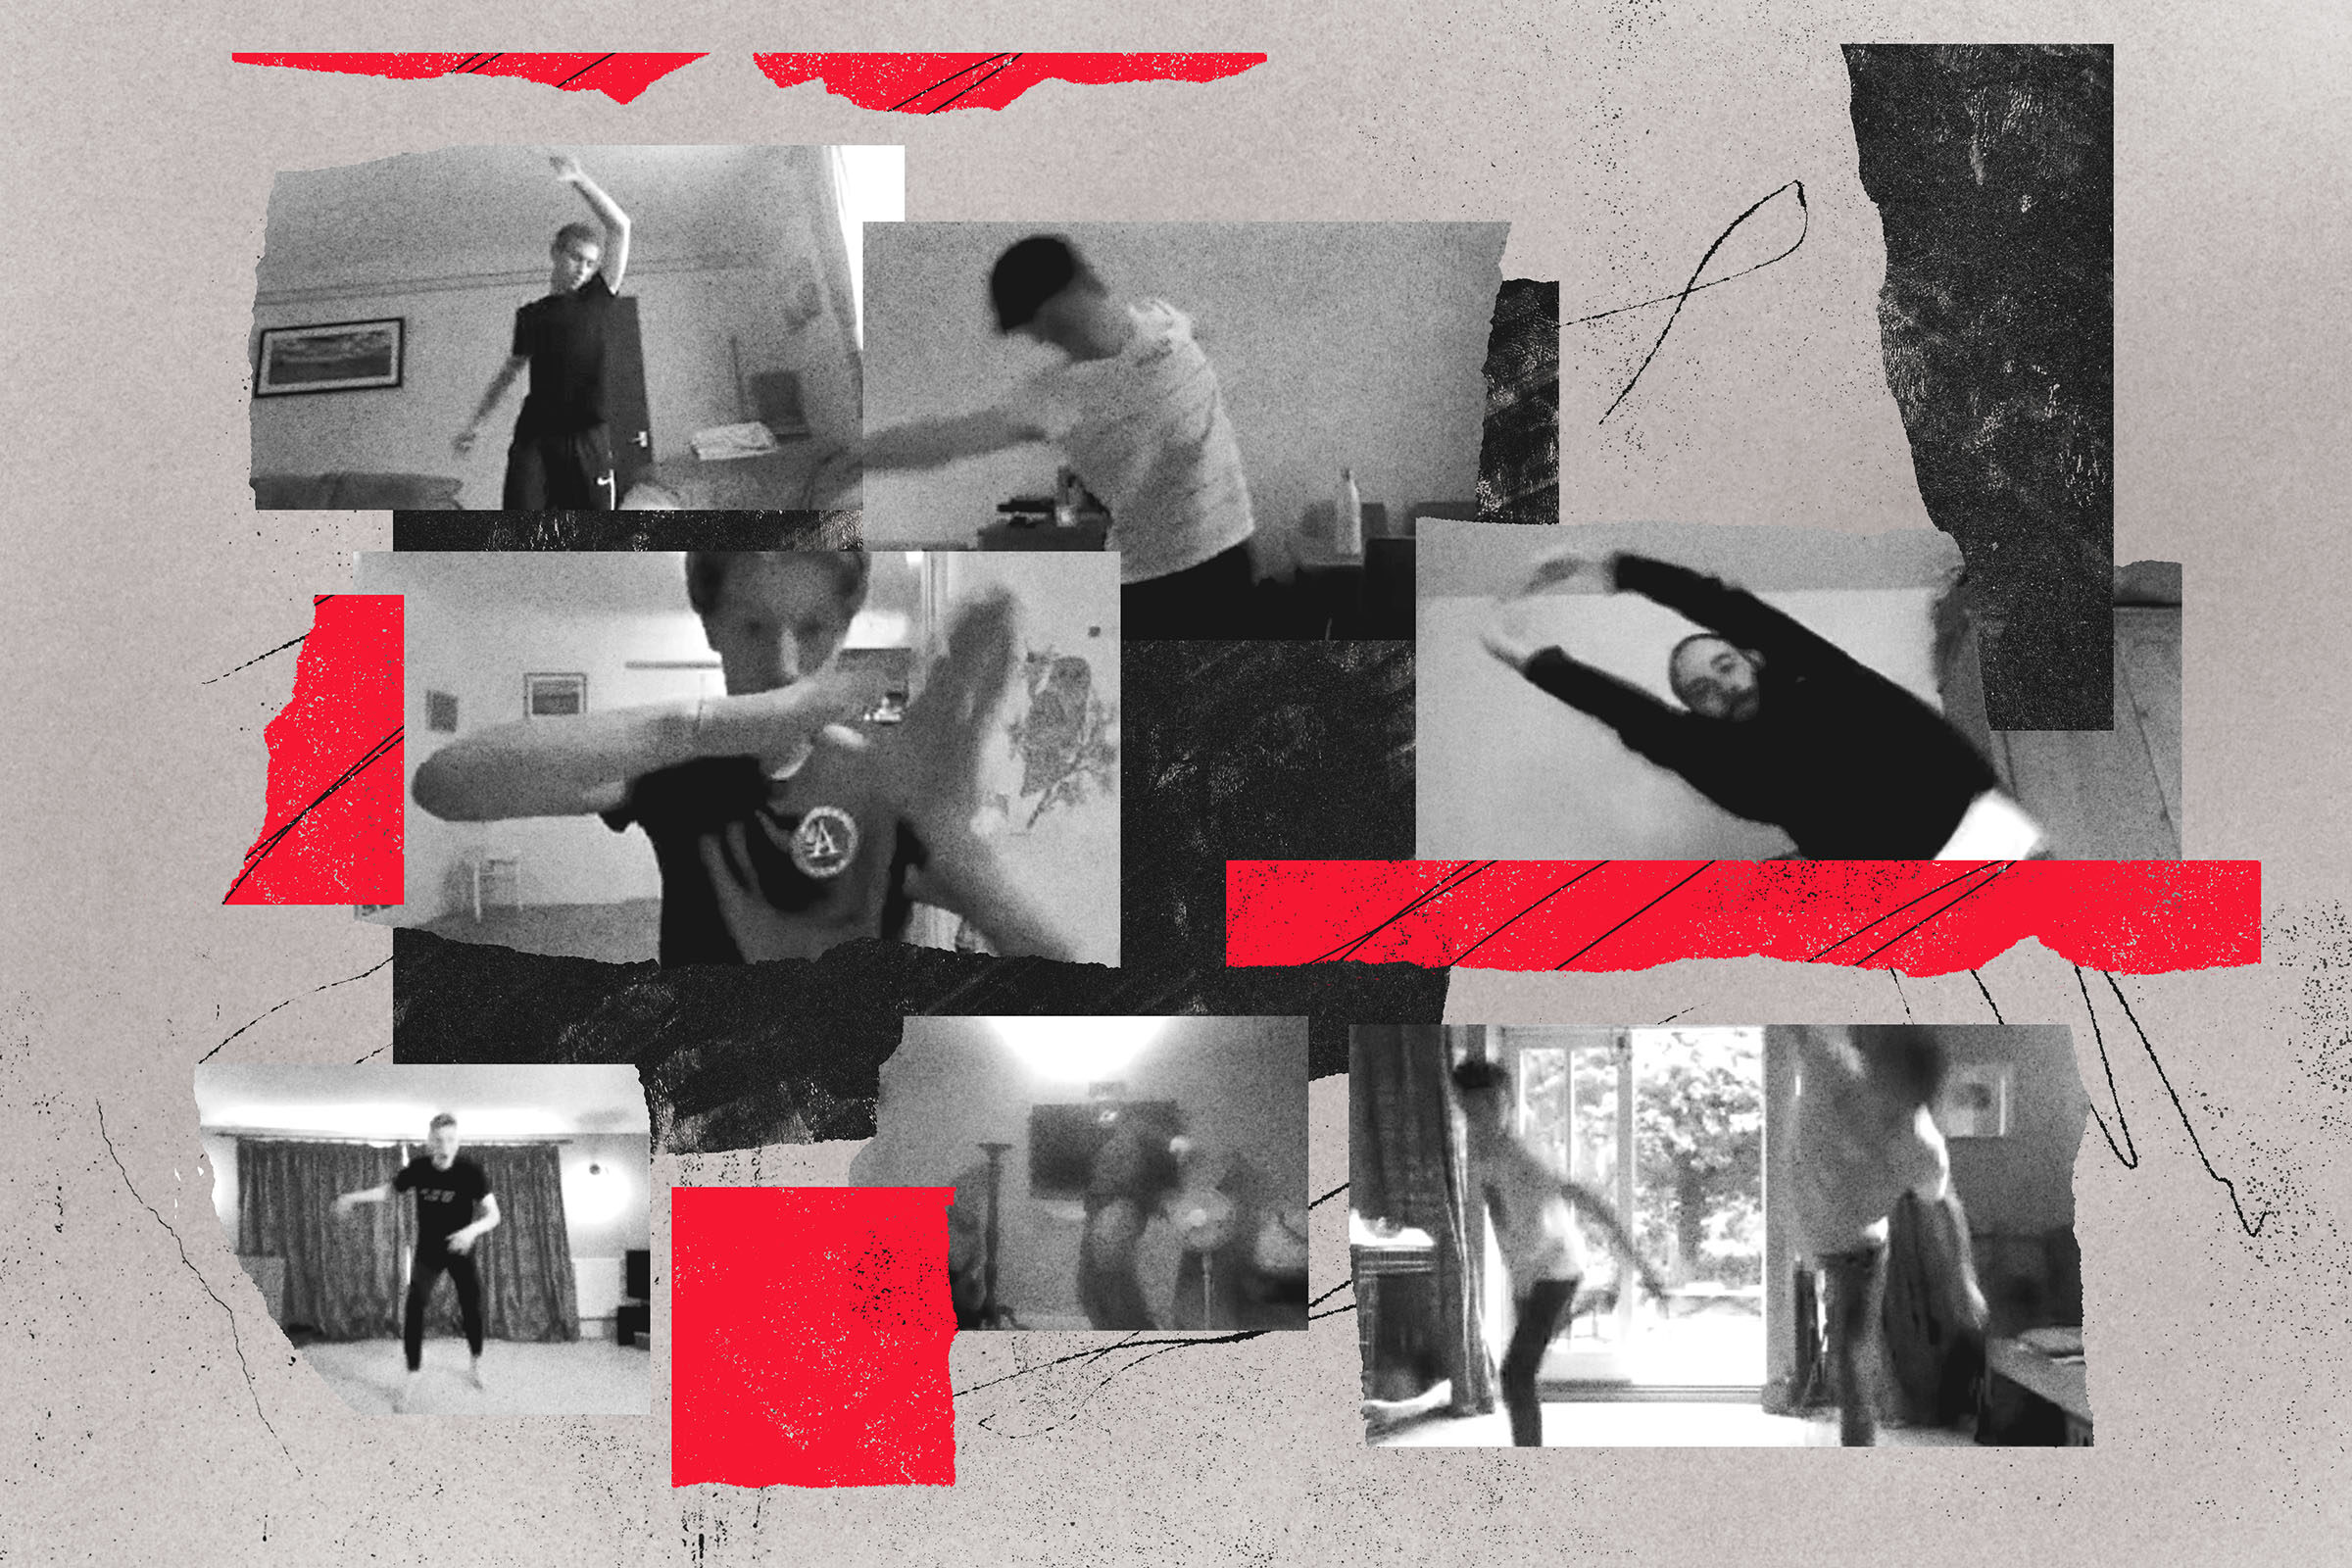 A collage of photographs featuring youth dancers rehearsing online